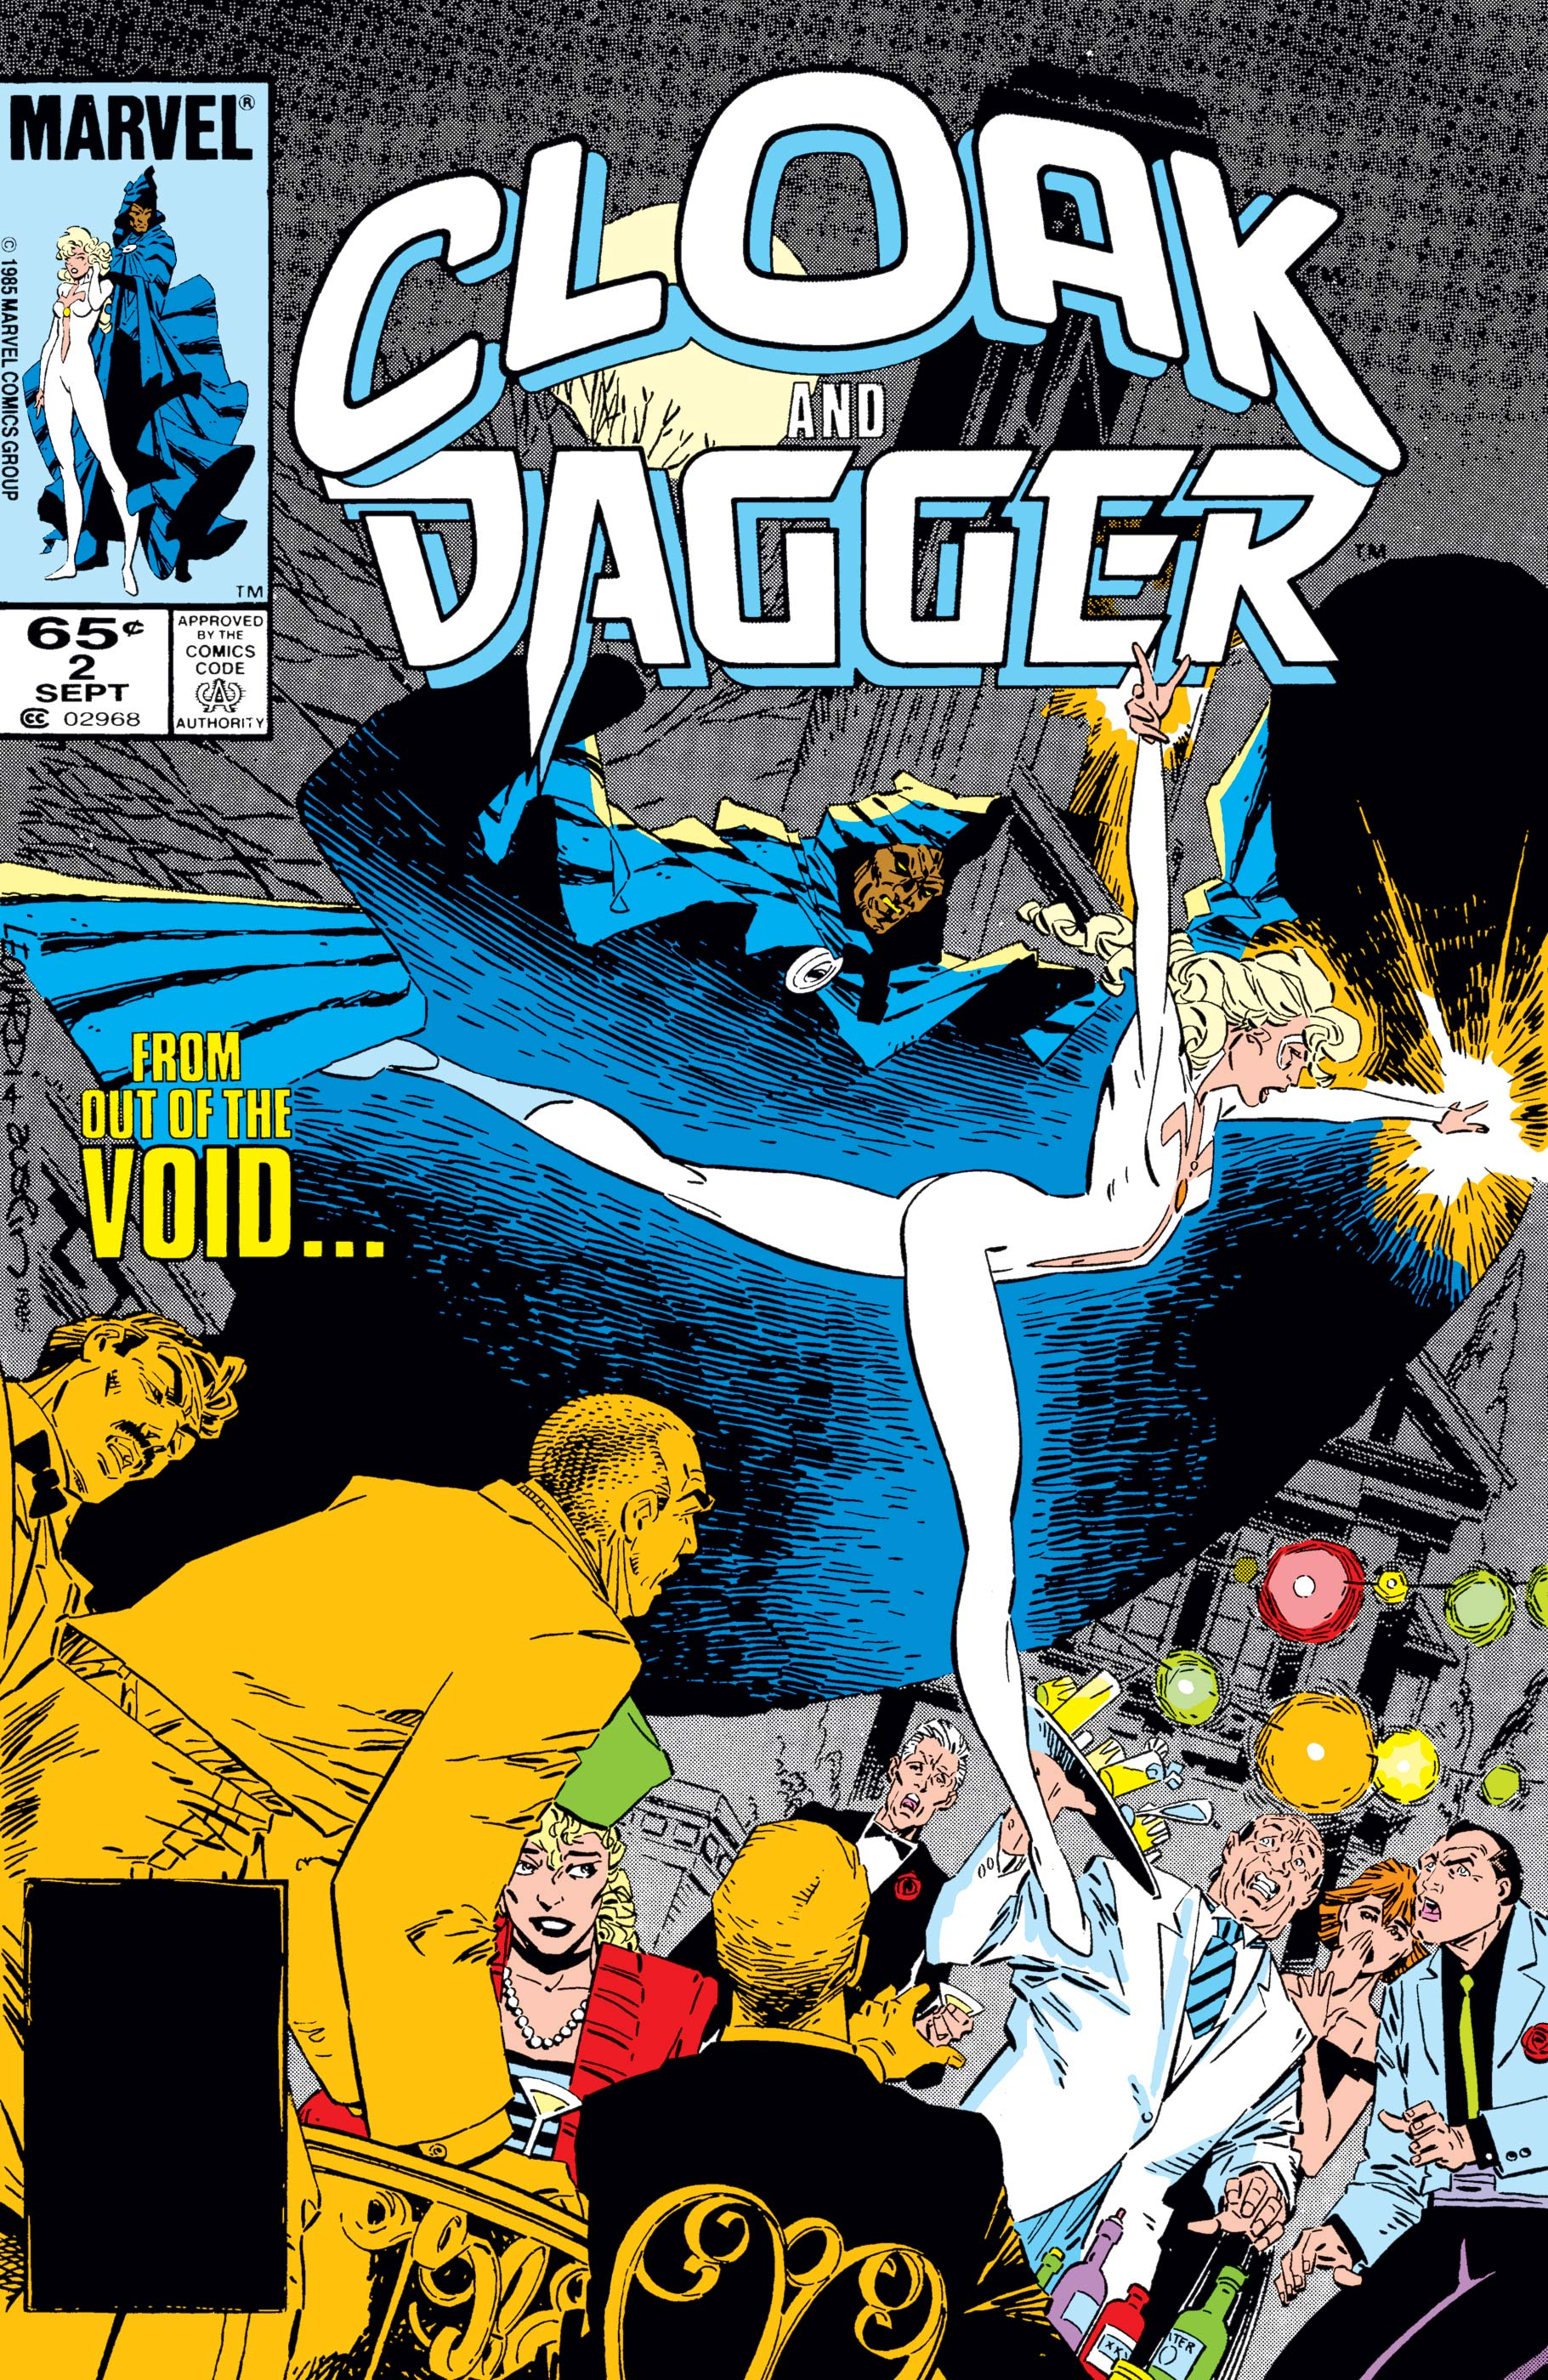 Cloak and Dagger (1985) #2